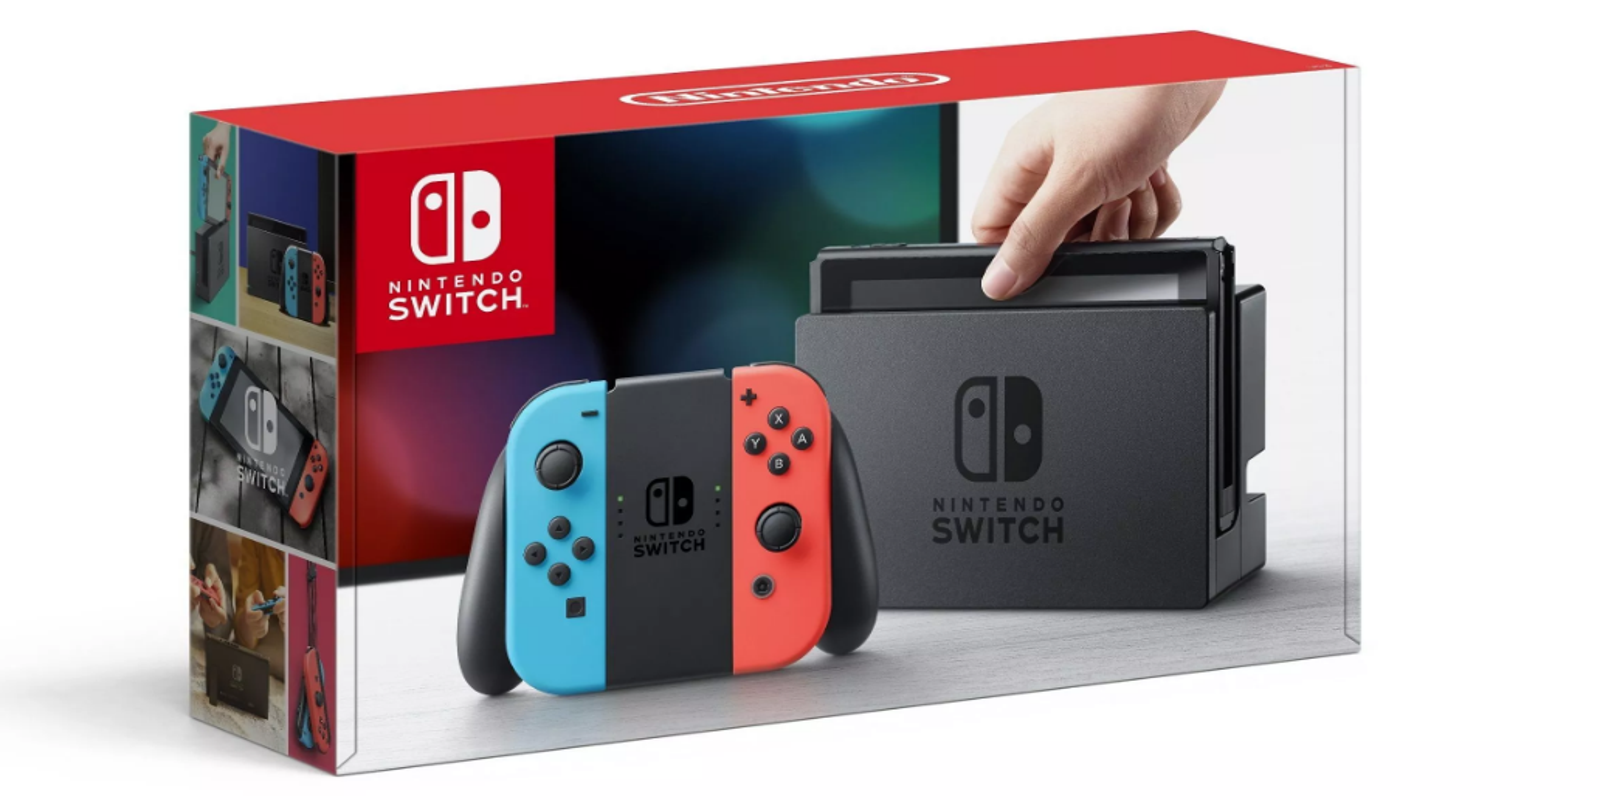 Strangers in Downriver Facebook group pay off mom's Nintendo Switch layaway